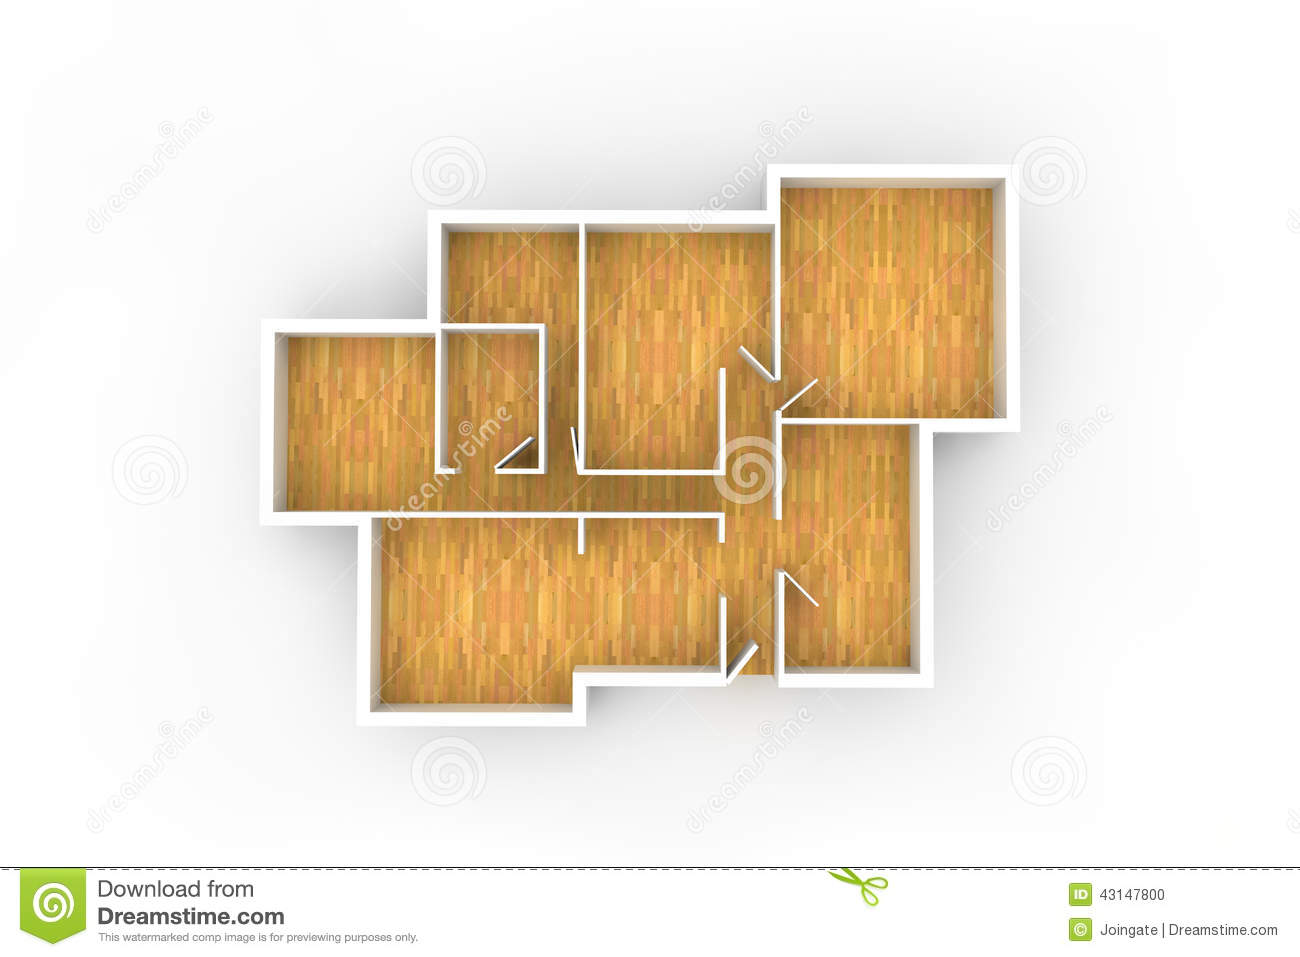 floorplan for typical house or office building with wooden